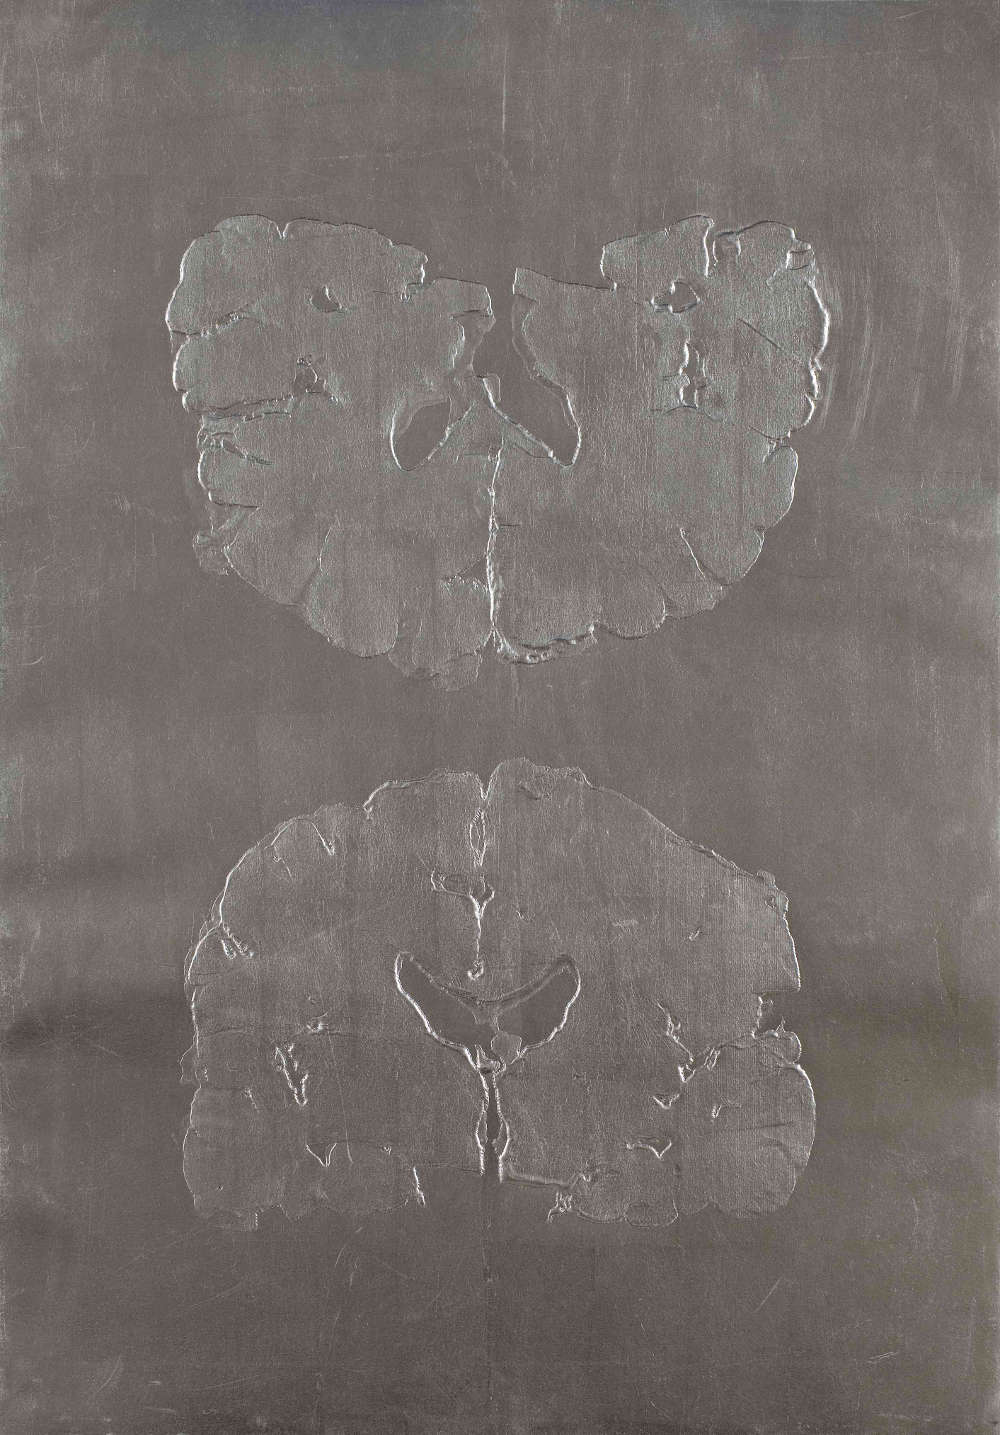 Dillwyn Smith, Silvering the Cerebrum, 2015. Unique emboss on chine collé, silver leaf to tarnish, 70 x 50 cm